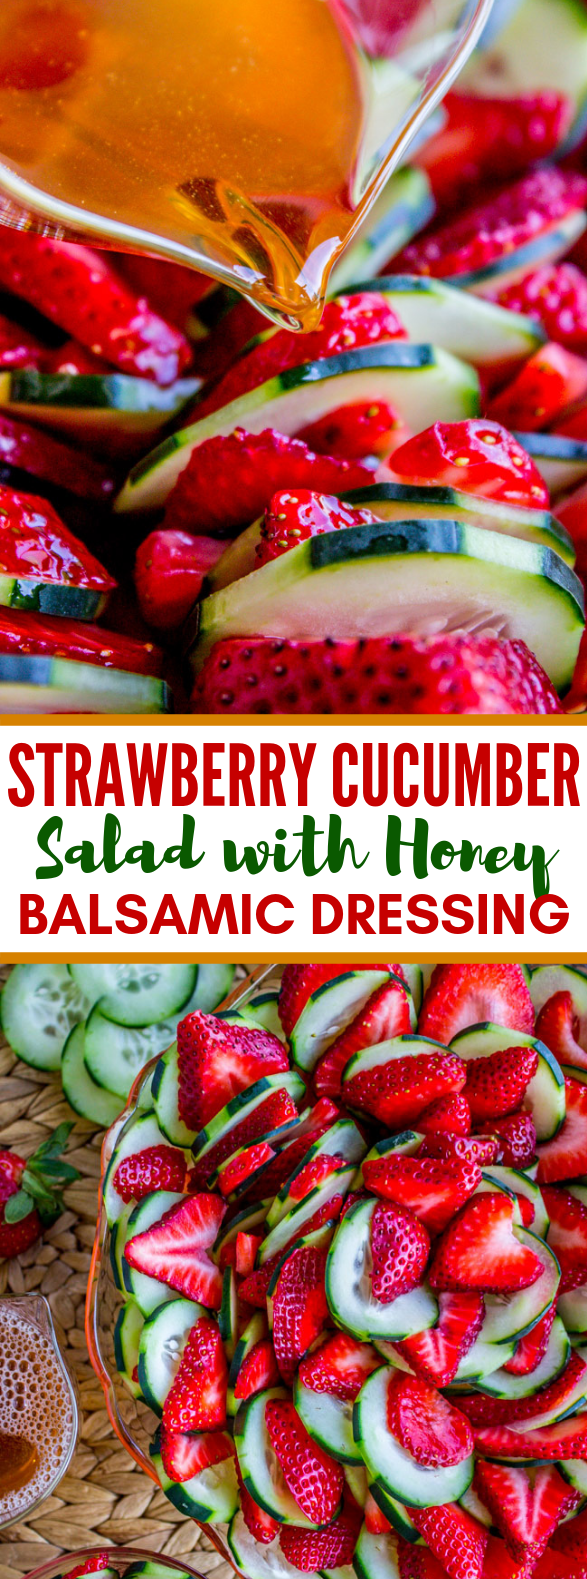 Strawberry Cucumber Salad with Honey Balsamic Dressing #healthy #fruit